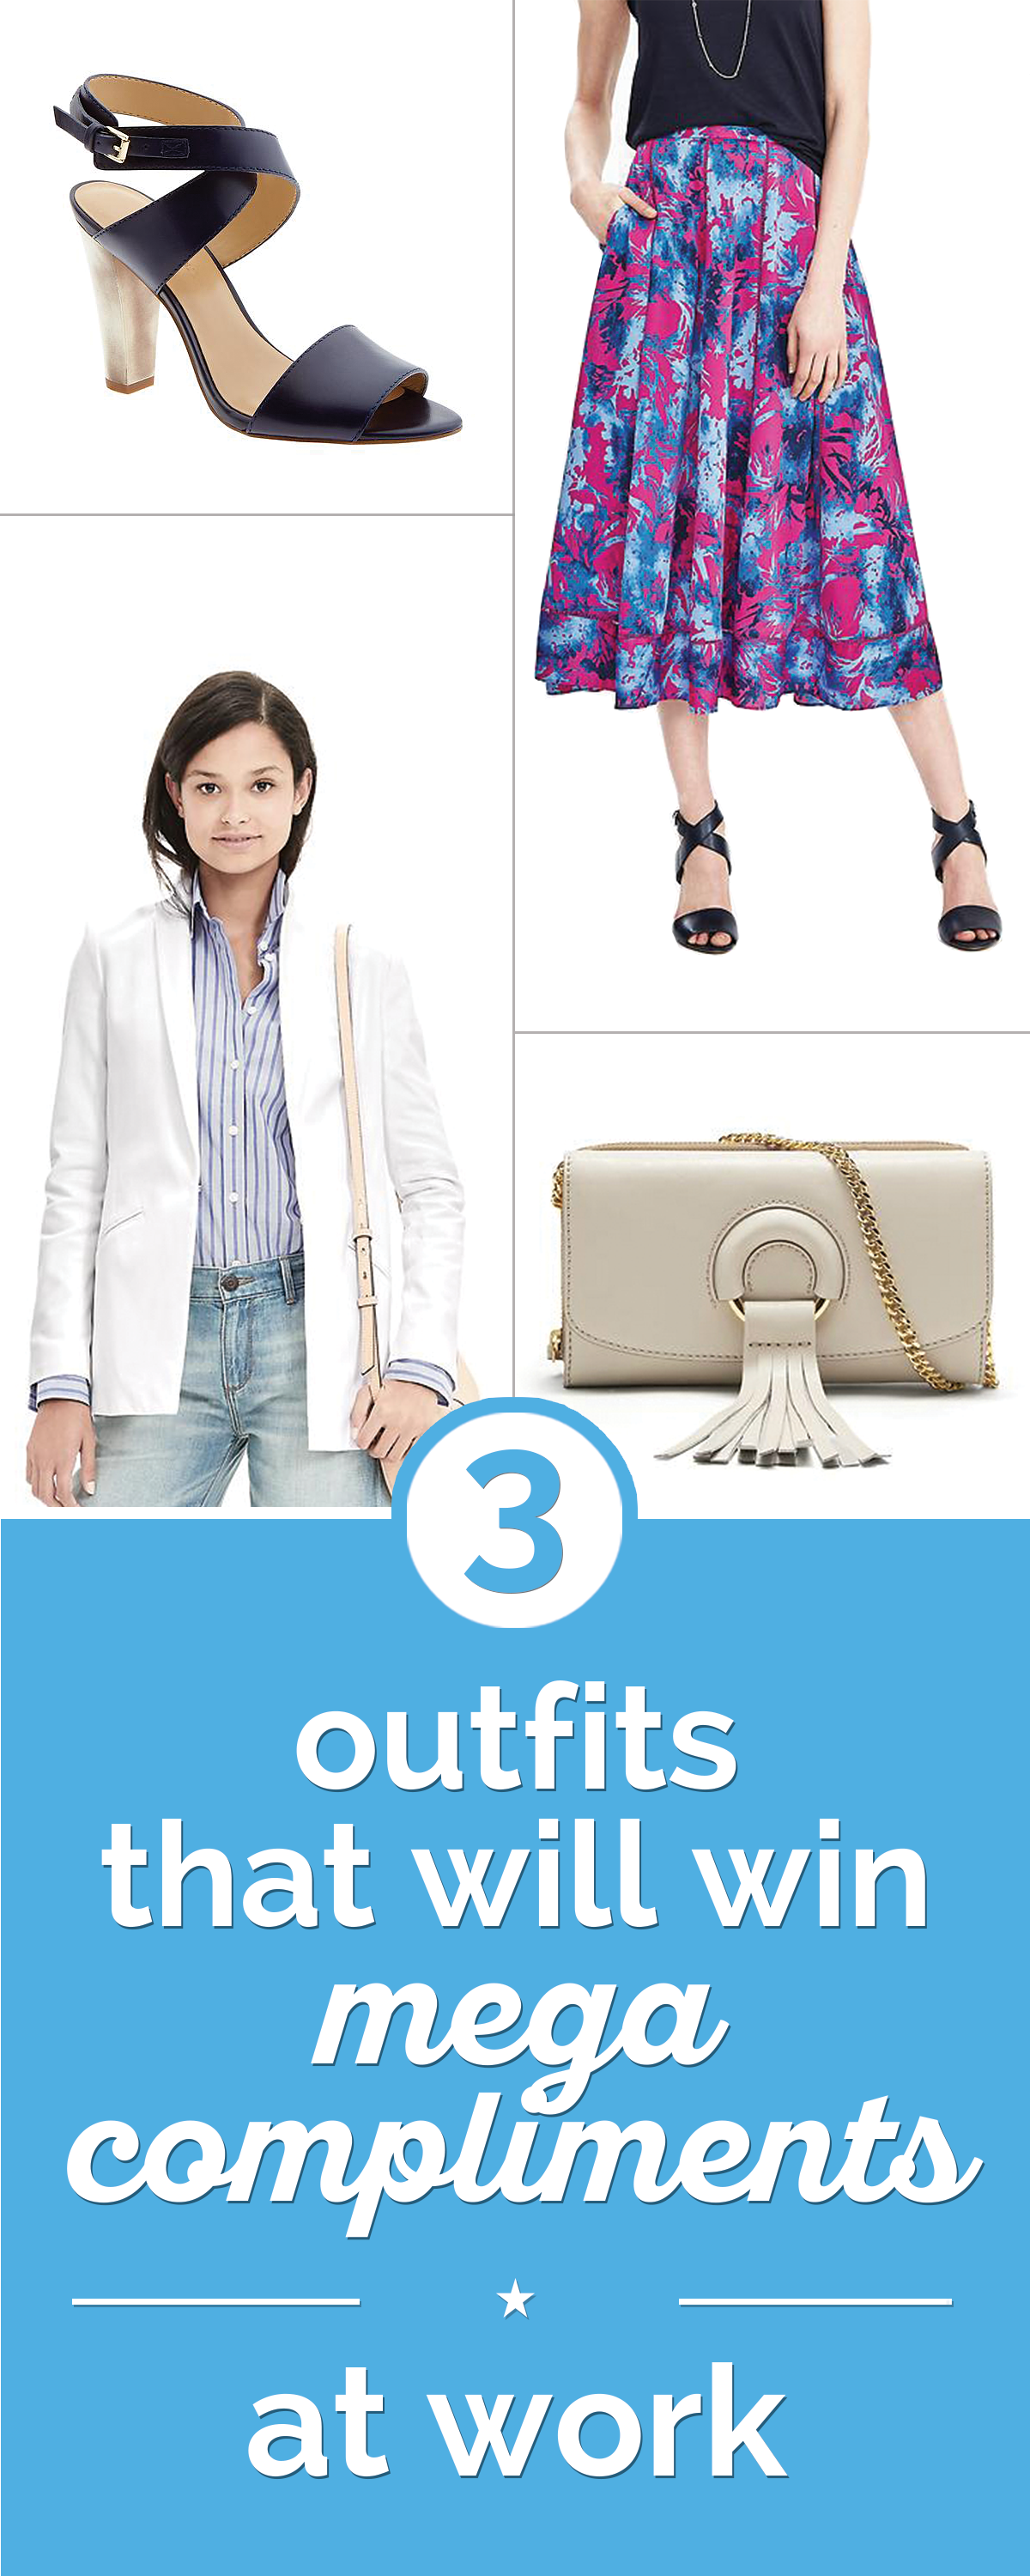 Three Outfits That Will Win Mega Compliments at Work | thegoodstuff